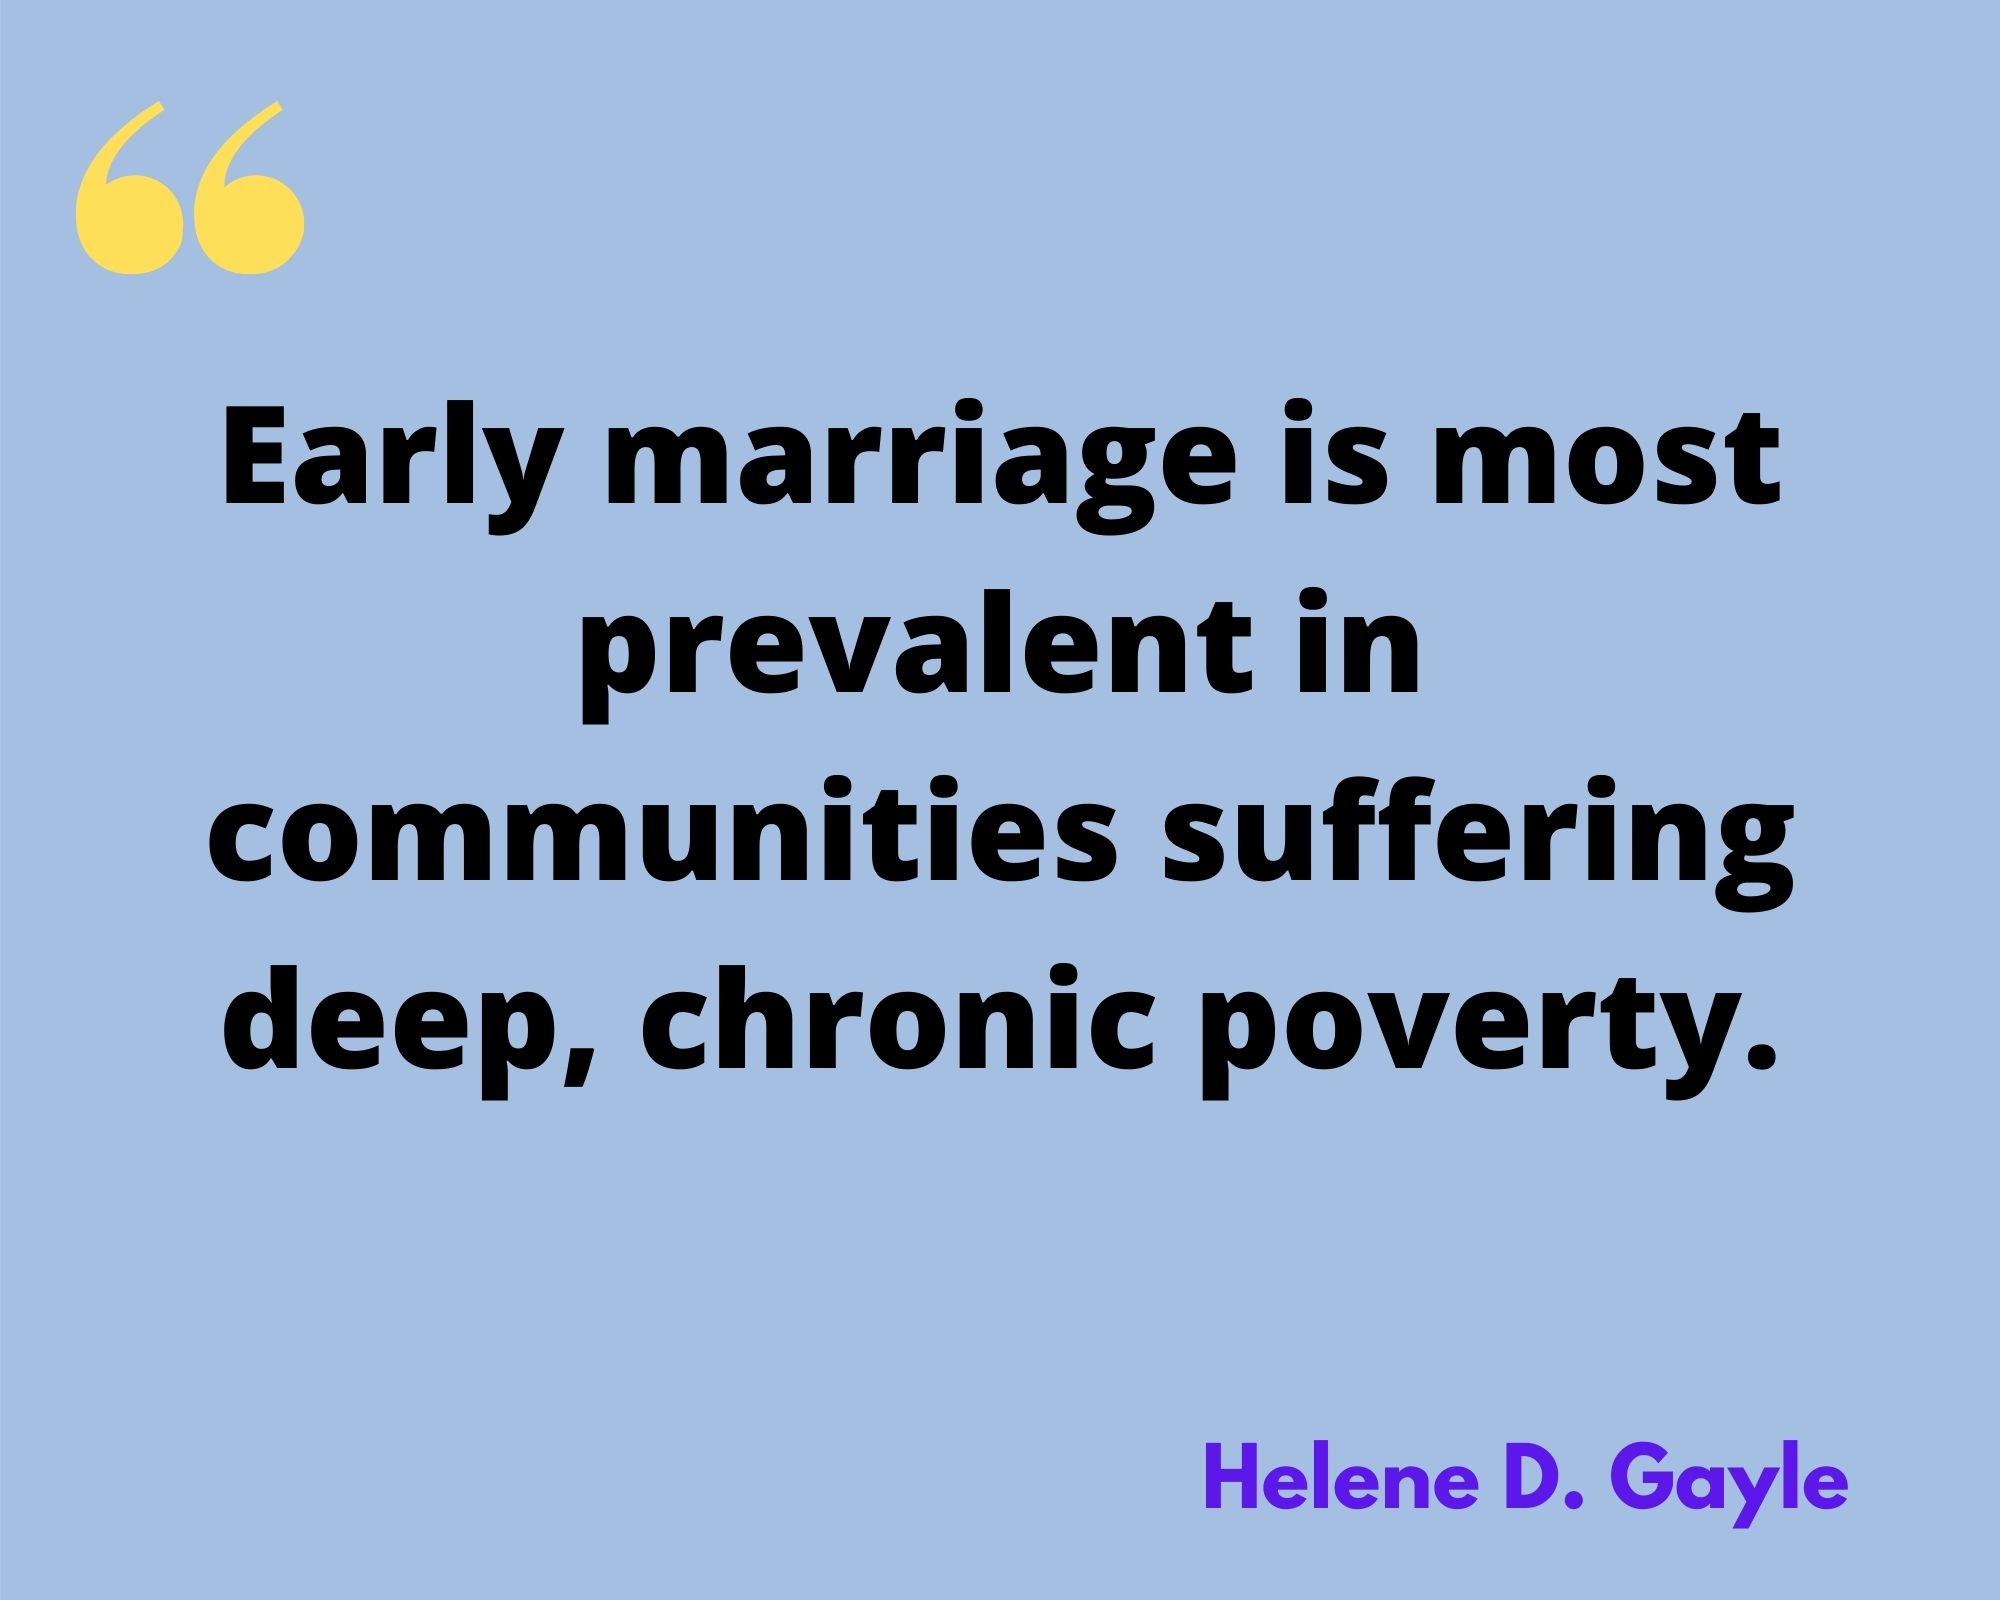 Helene D. Gayle Quotes